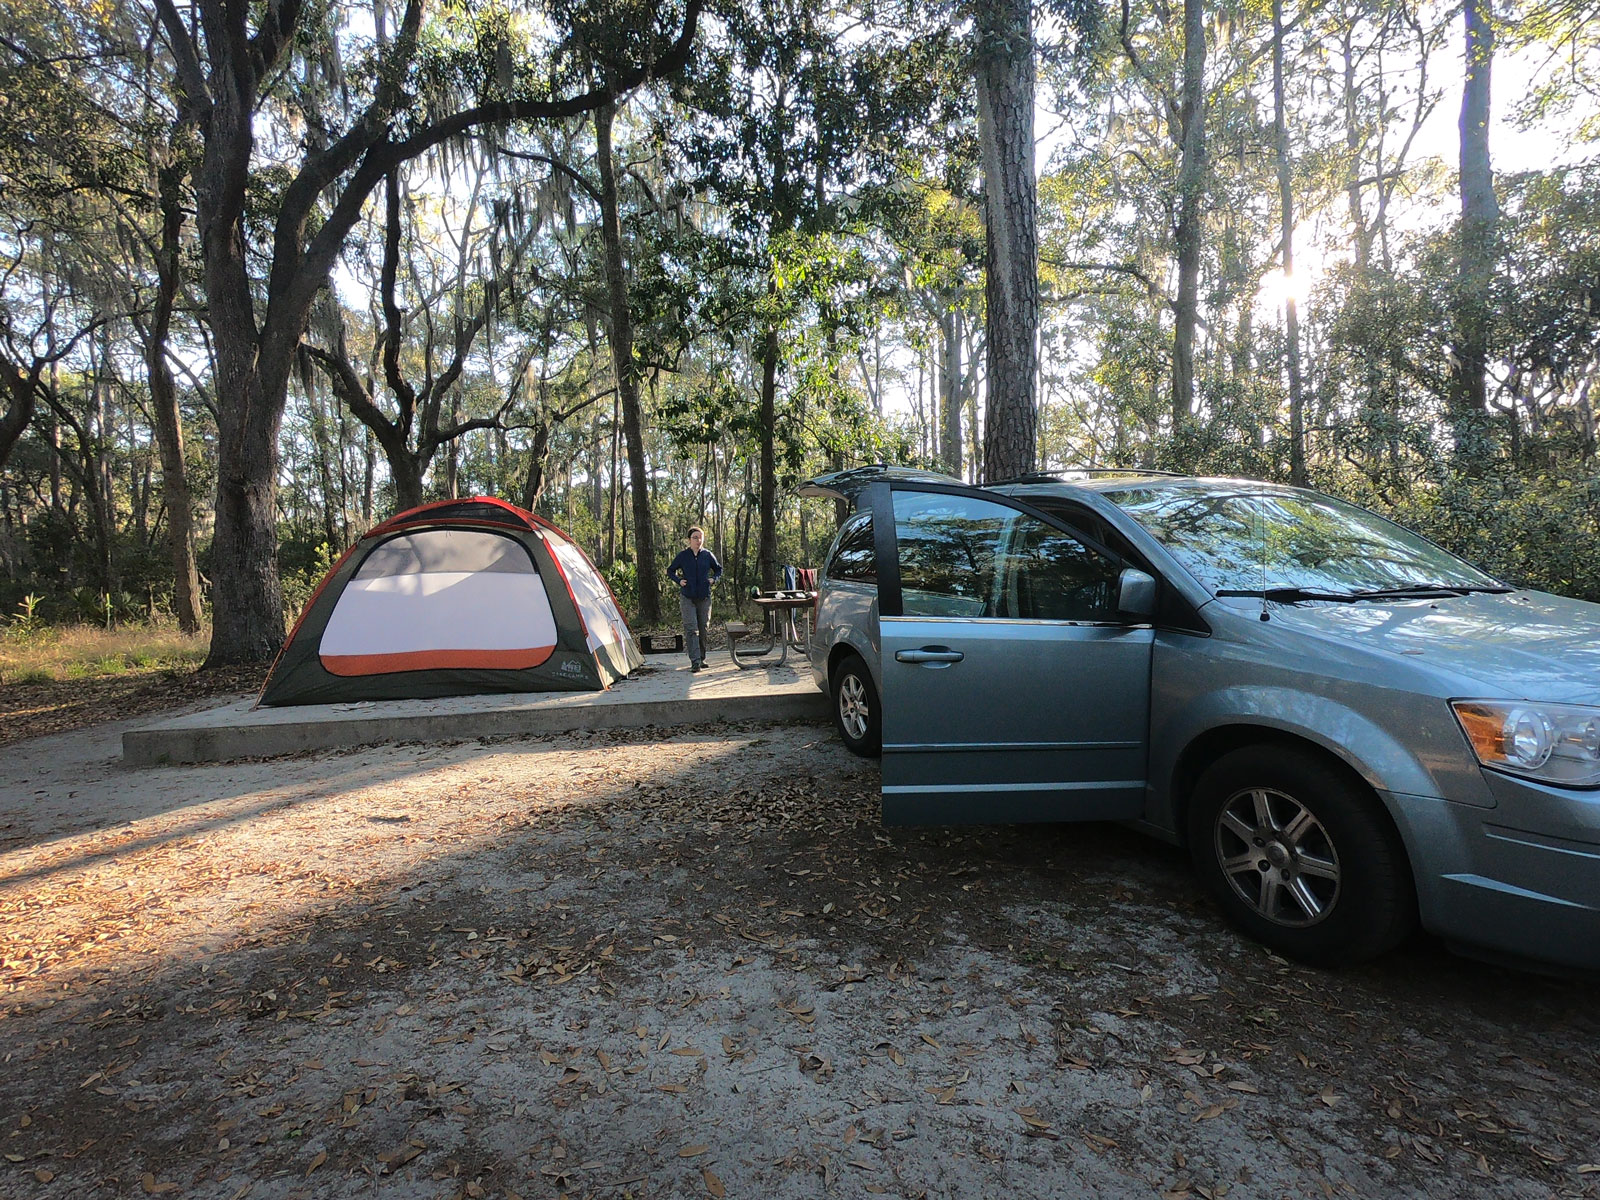 Tent on tentpad, picnic table, and van under pine trees and live oaks at Skidaway Island State Park, Georgia